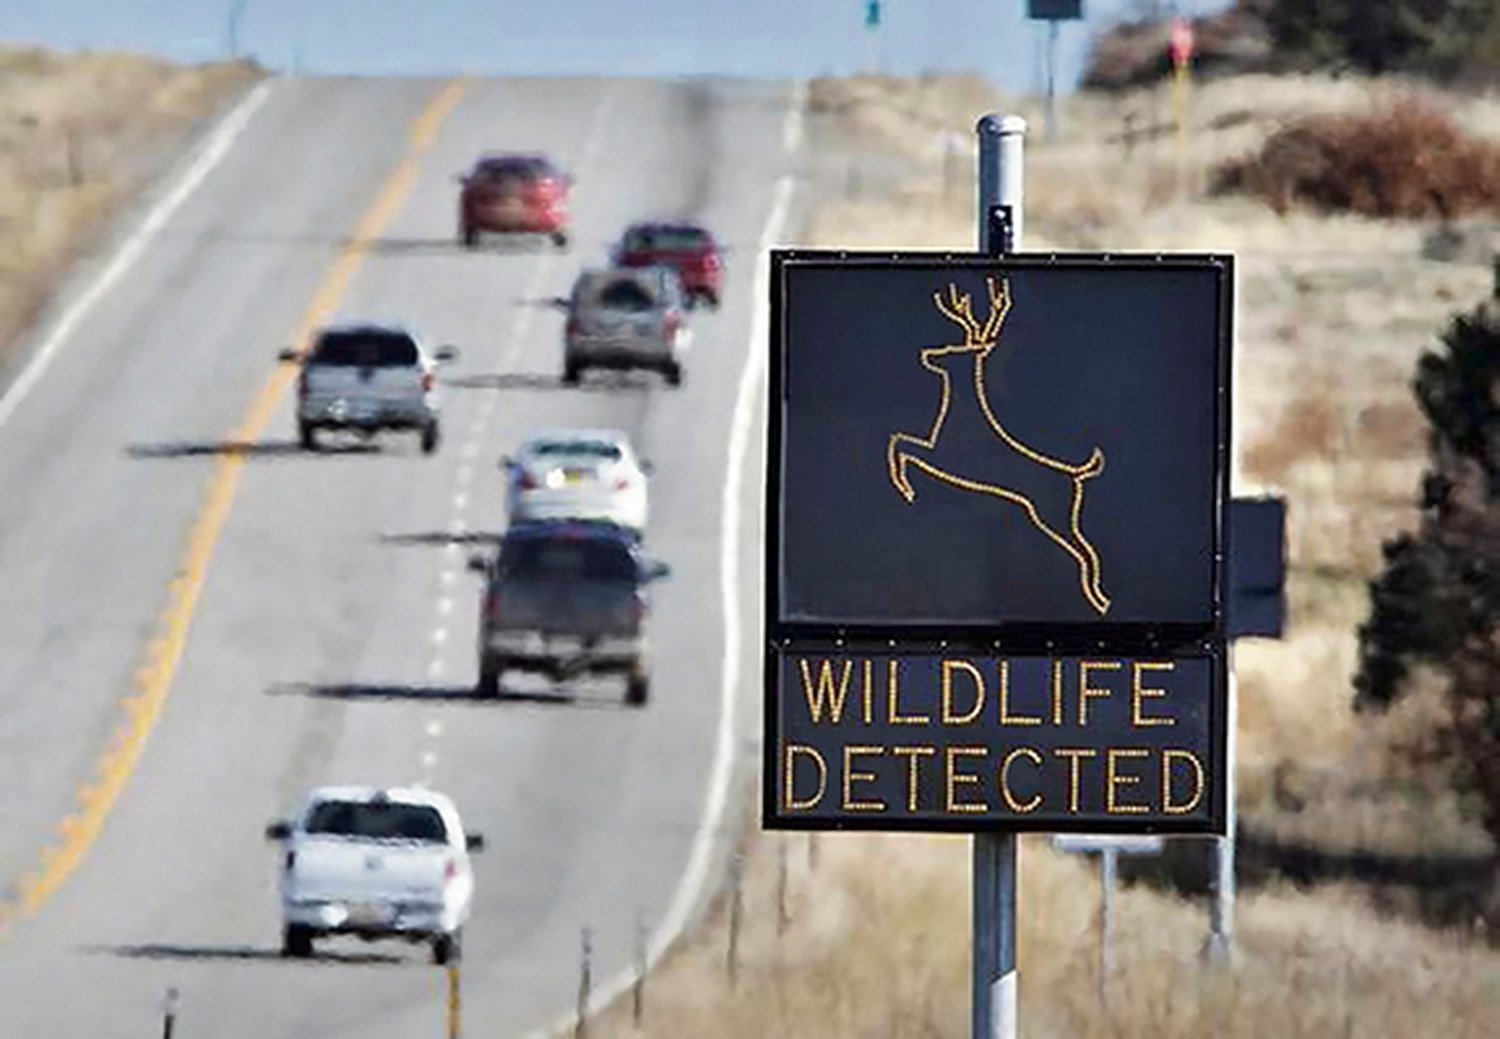 Signs like this one are intended to mitigate against wildlife-related car crashes.